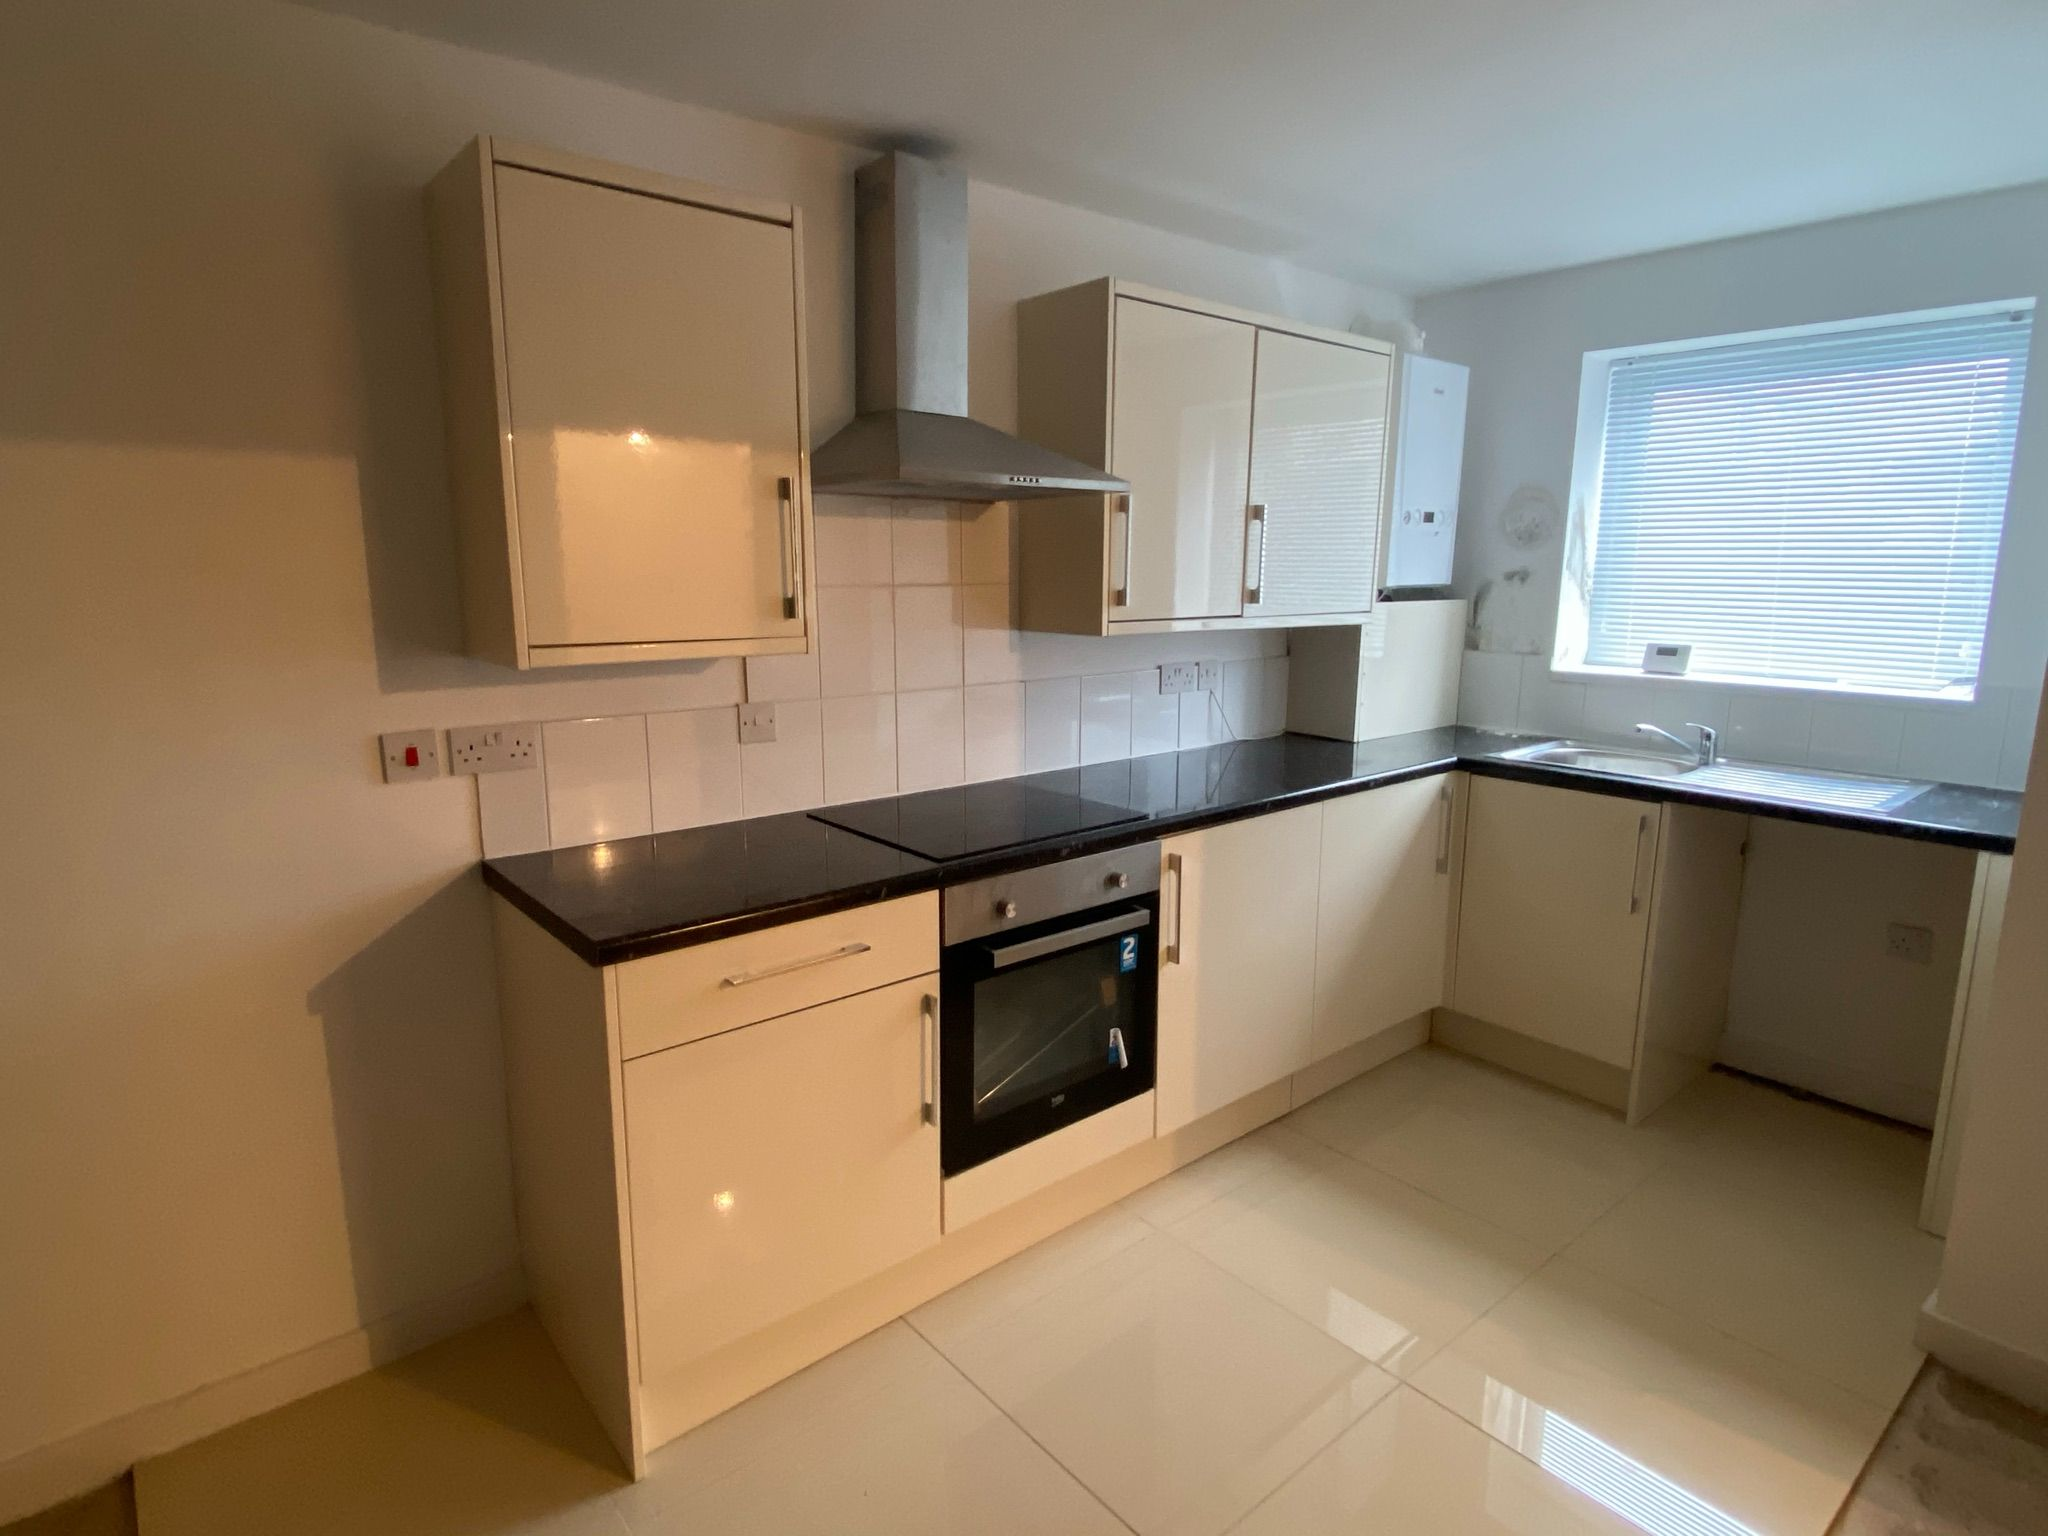 4 bedroom detached house For Sale in Durham - Photograph 3.